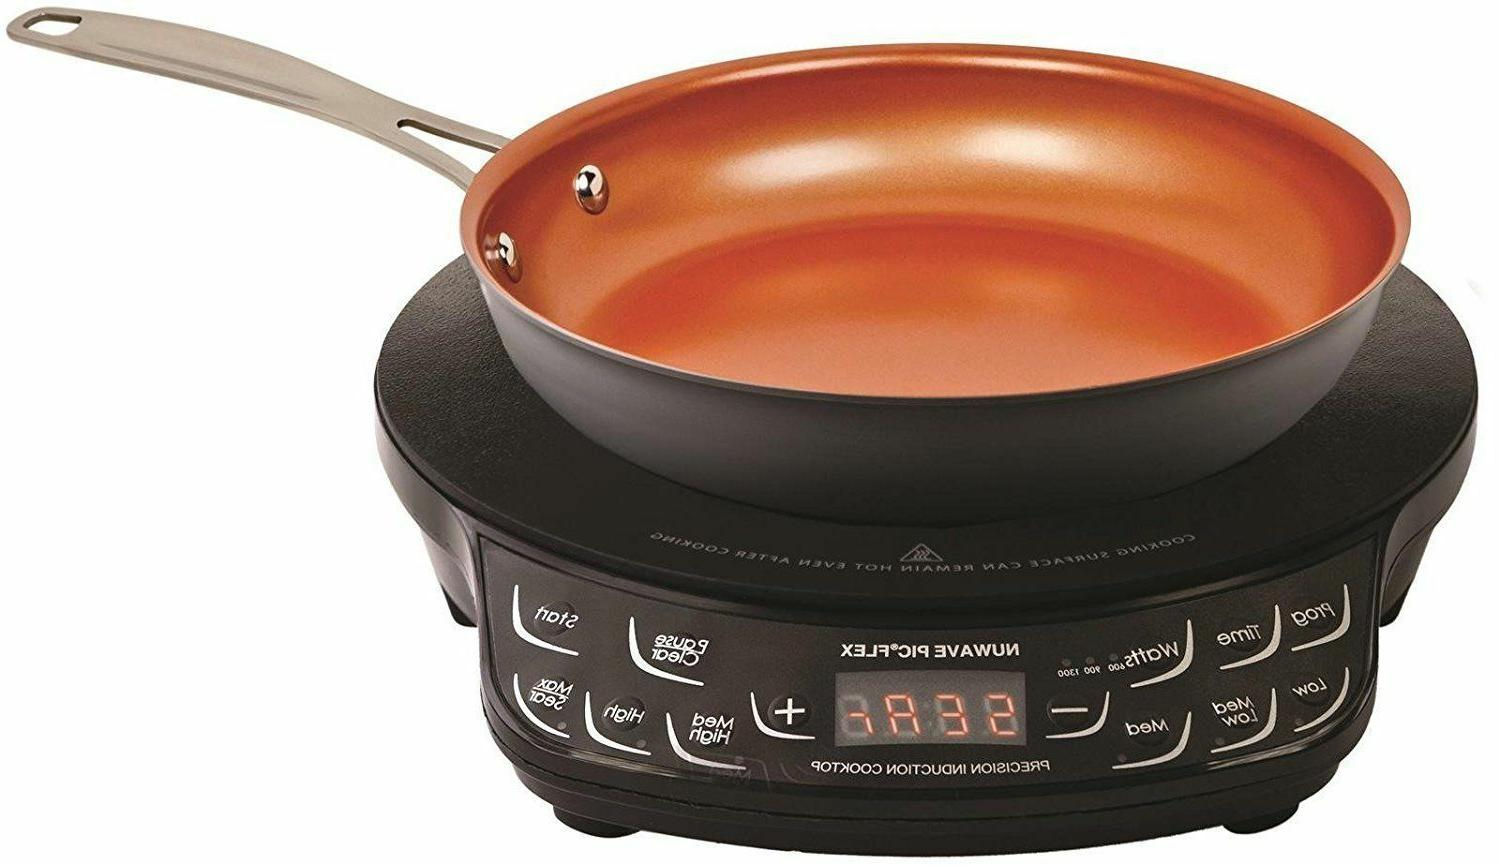 pic flex precision induction cooktop